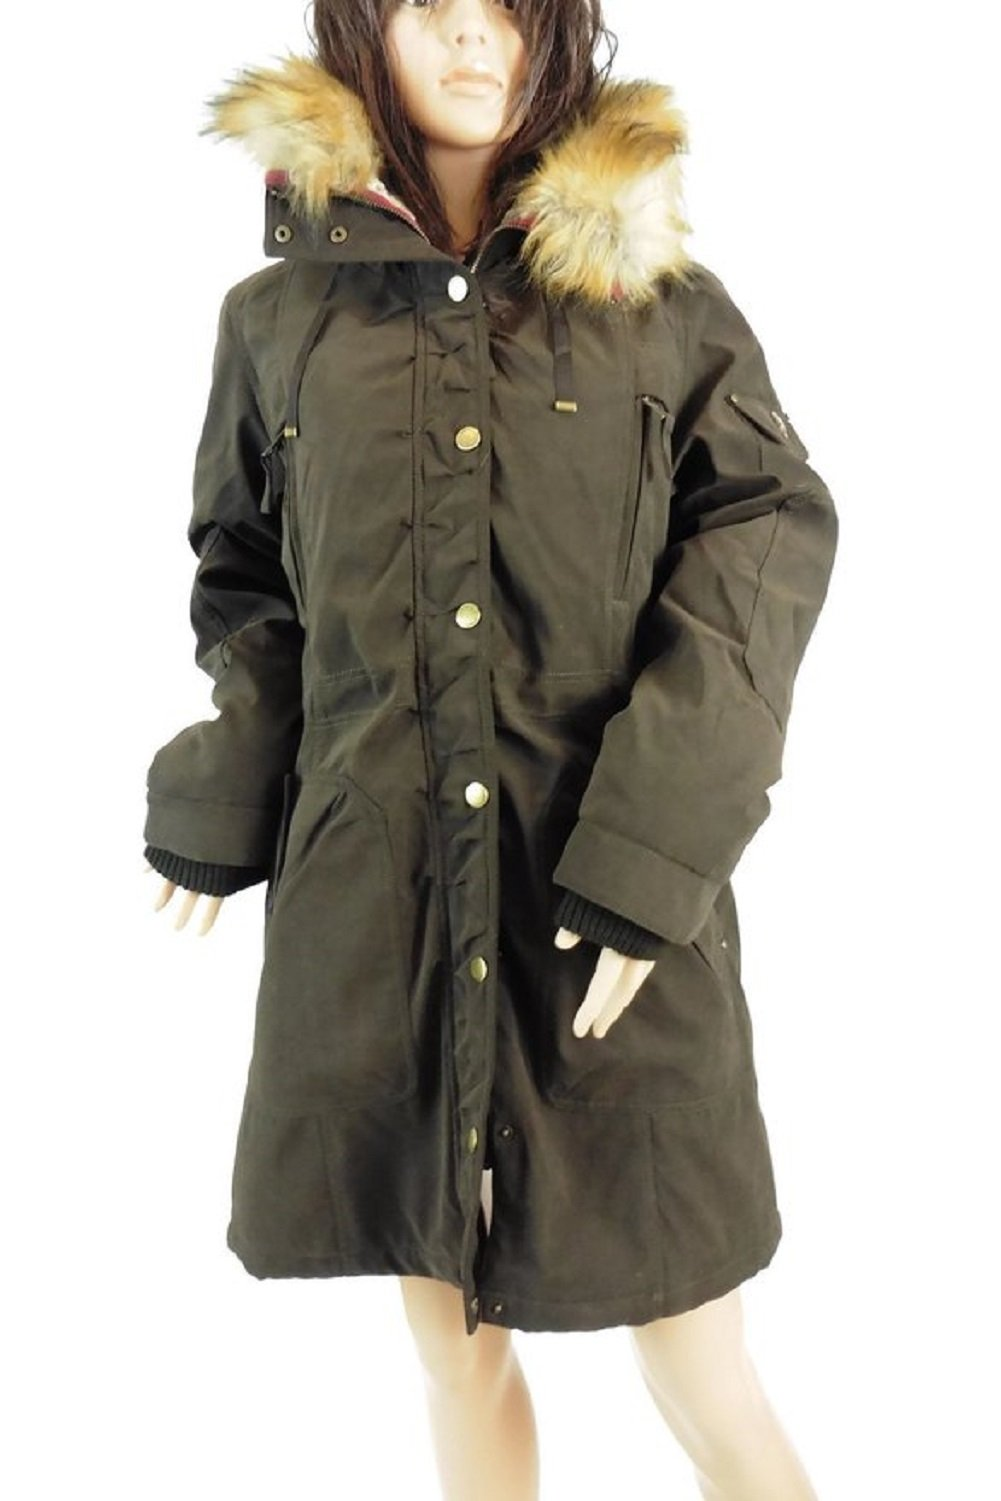 1 Madison Womens Heritage Collection Winter Jacket with Fur Hood, Dark Olive, L